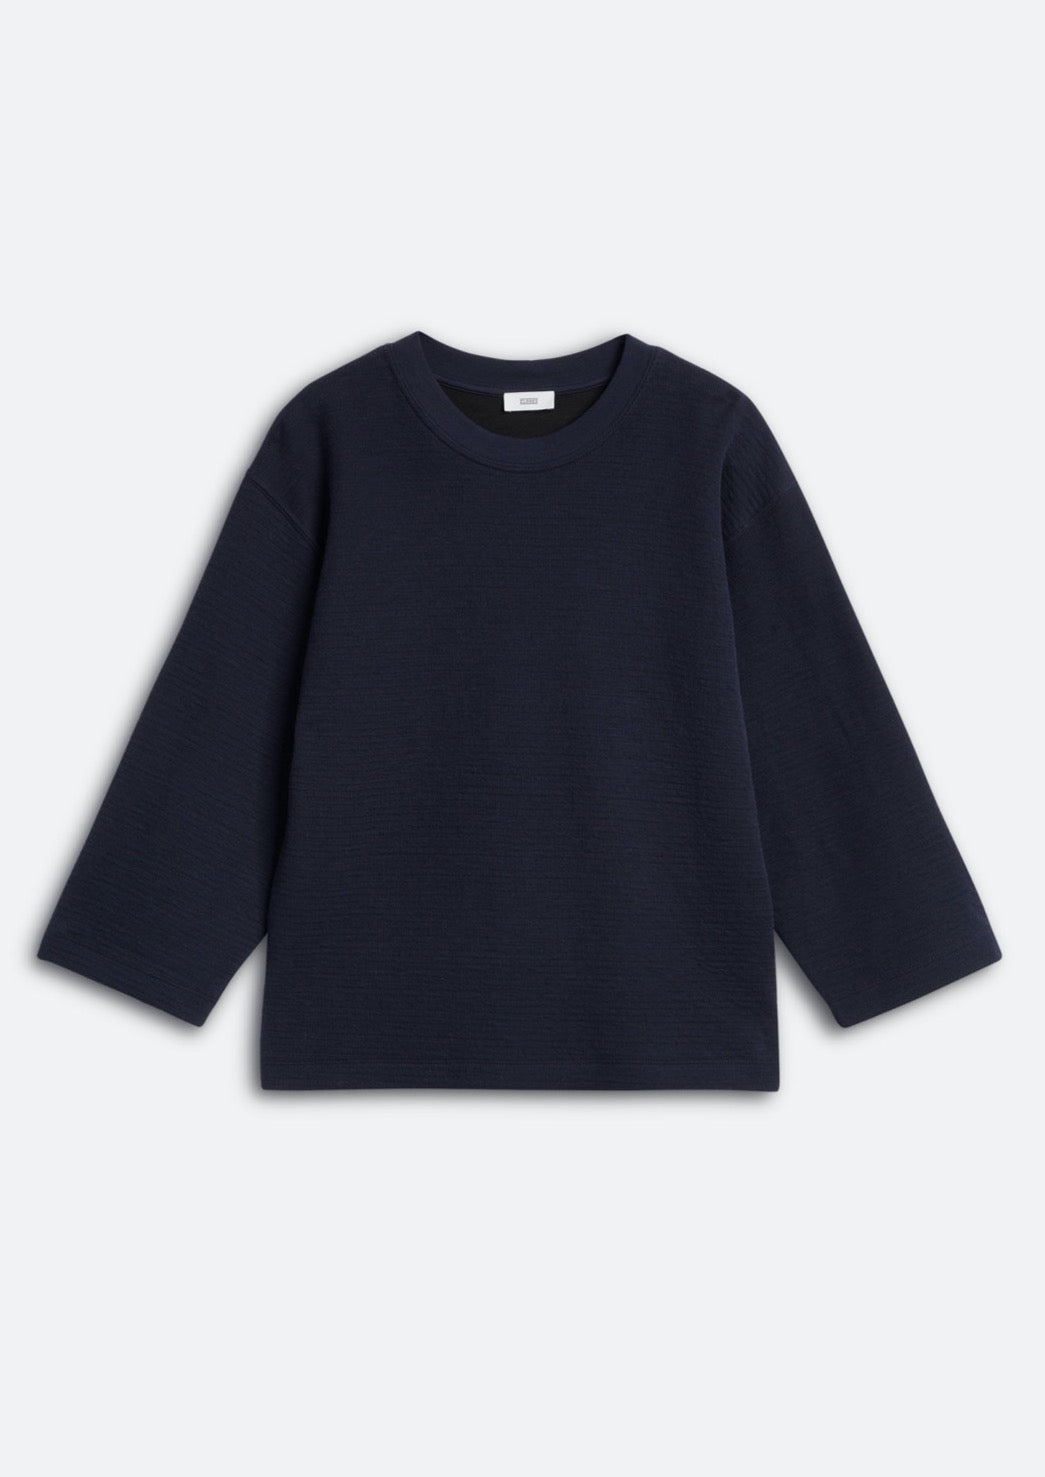 WOMEN'S TOP | DARK NIGHT